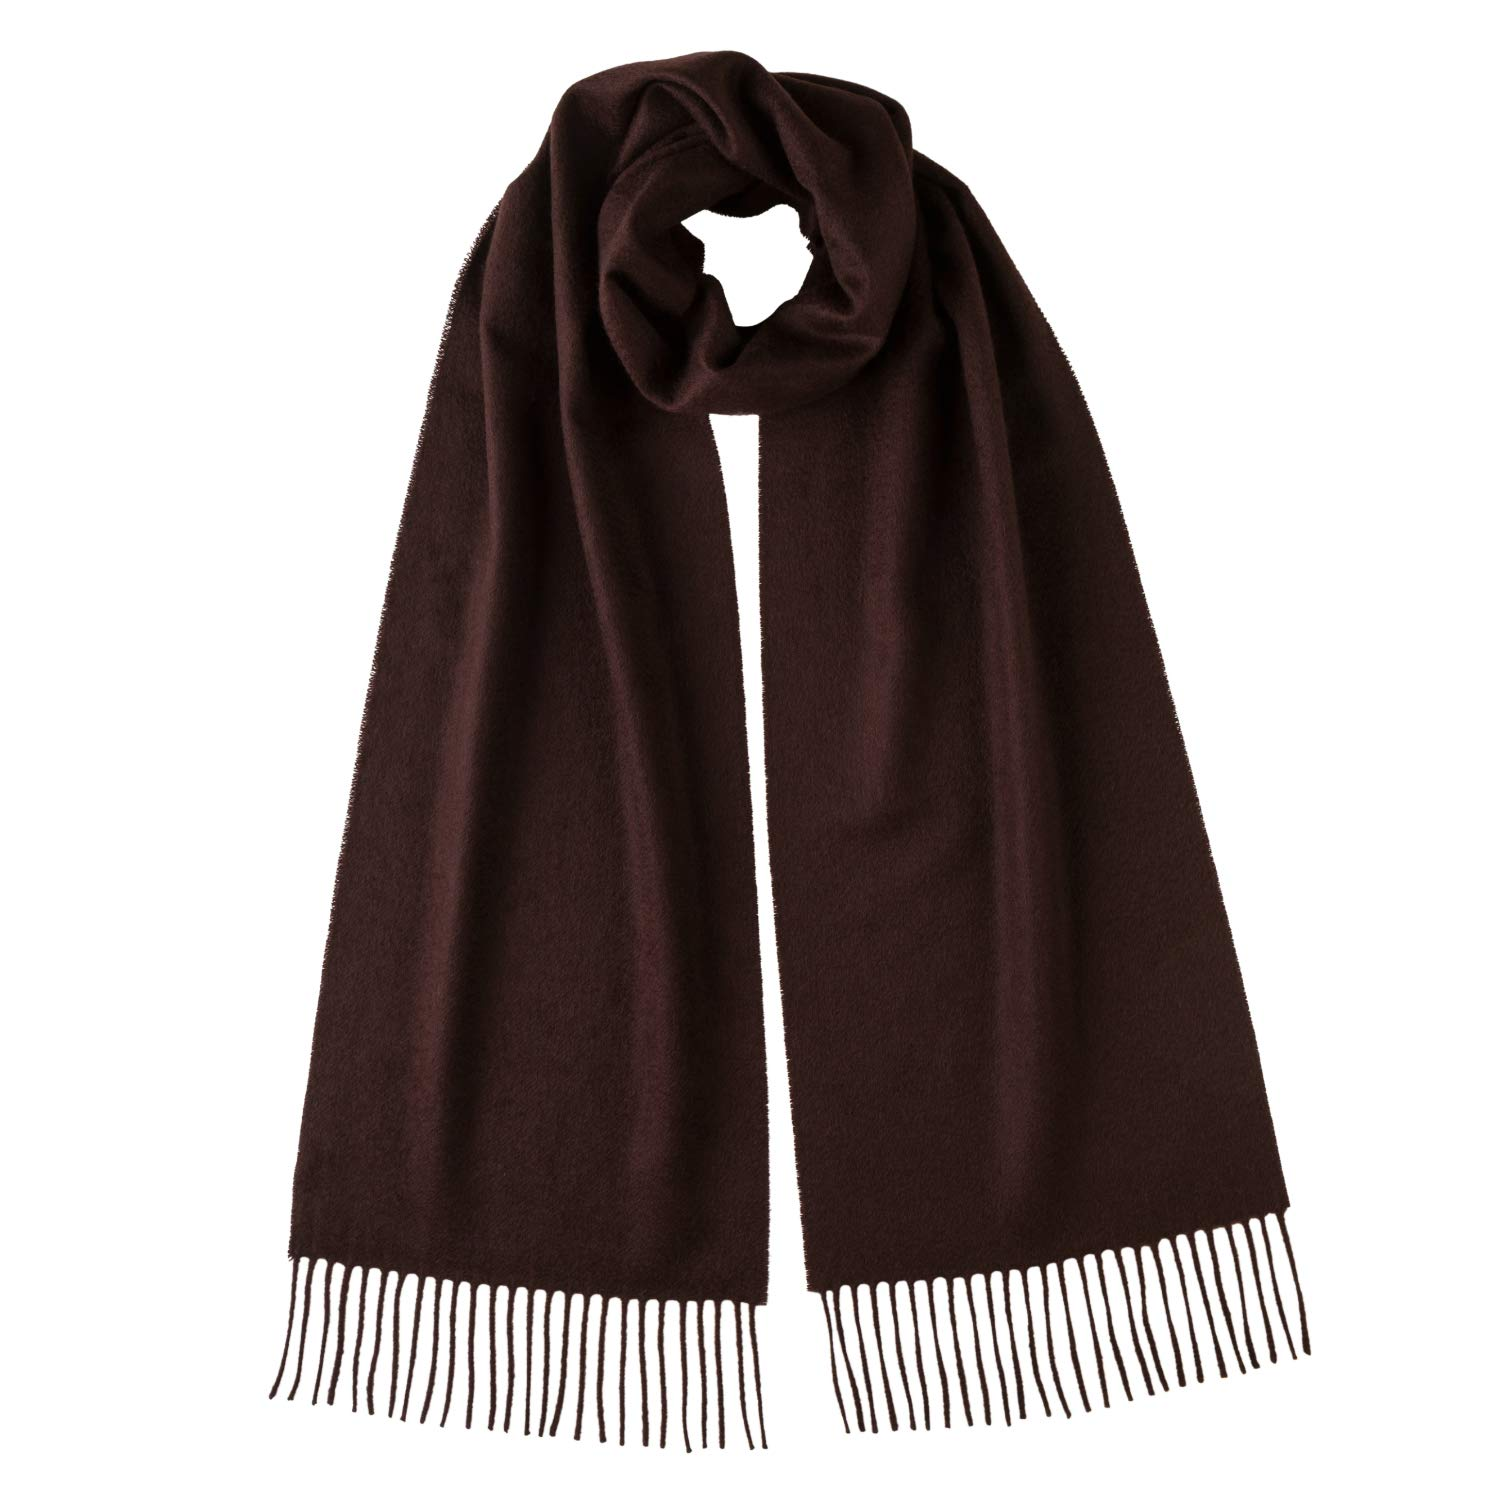 Chocolate Johnstons Of Elgin Women's Pure Cashmere Plain Scarf